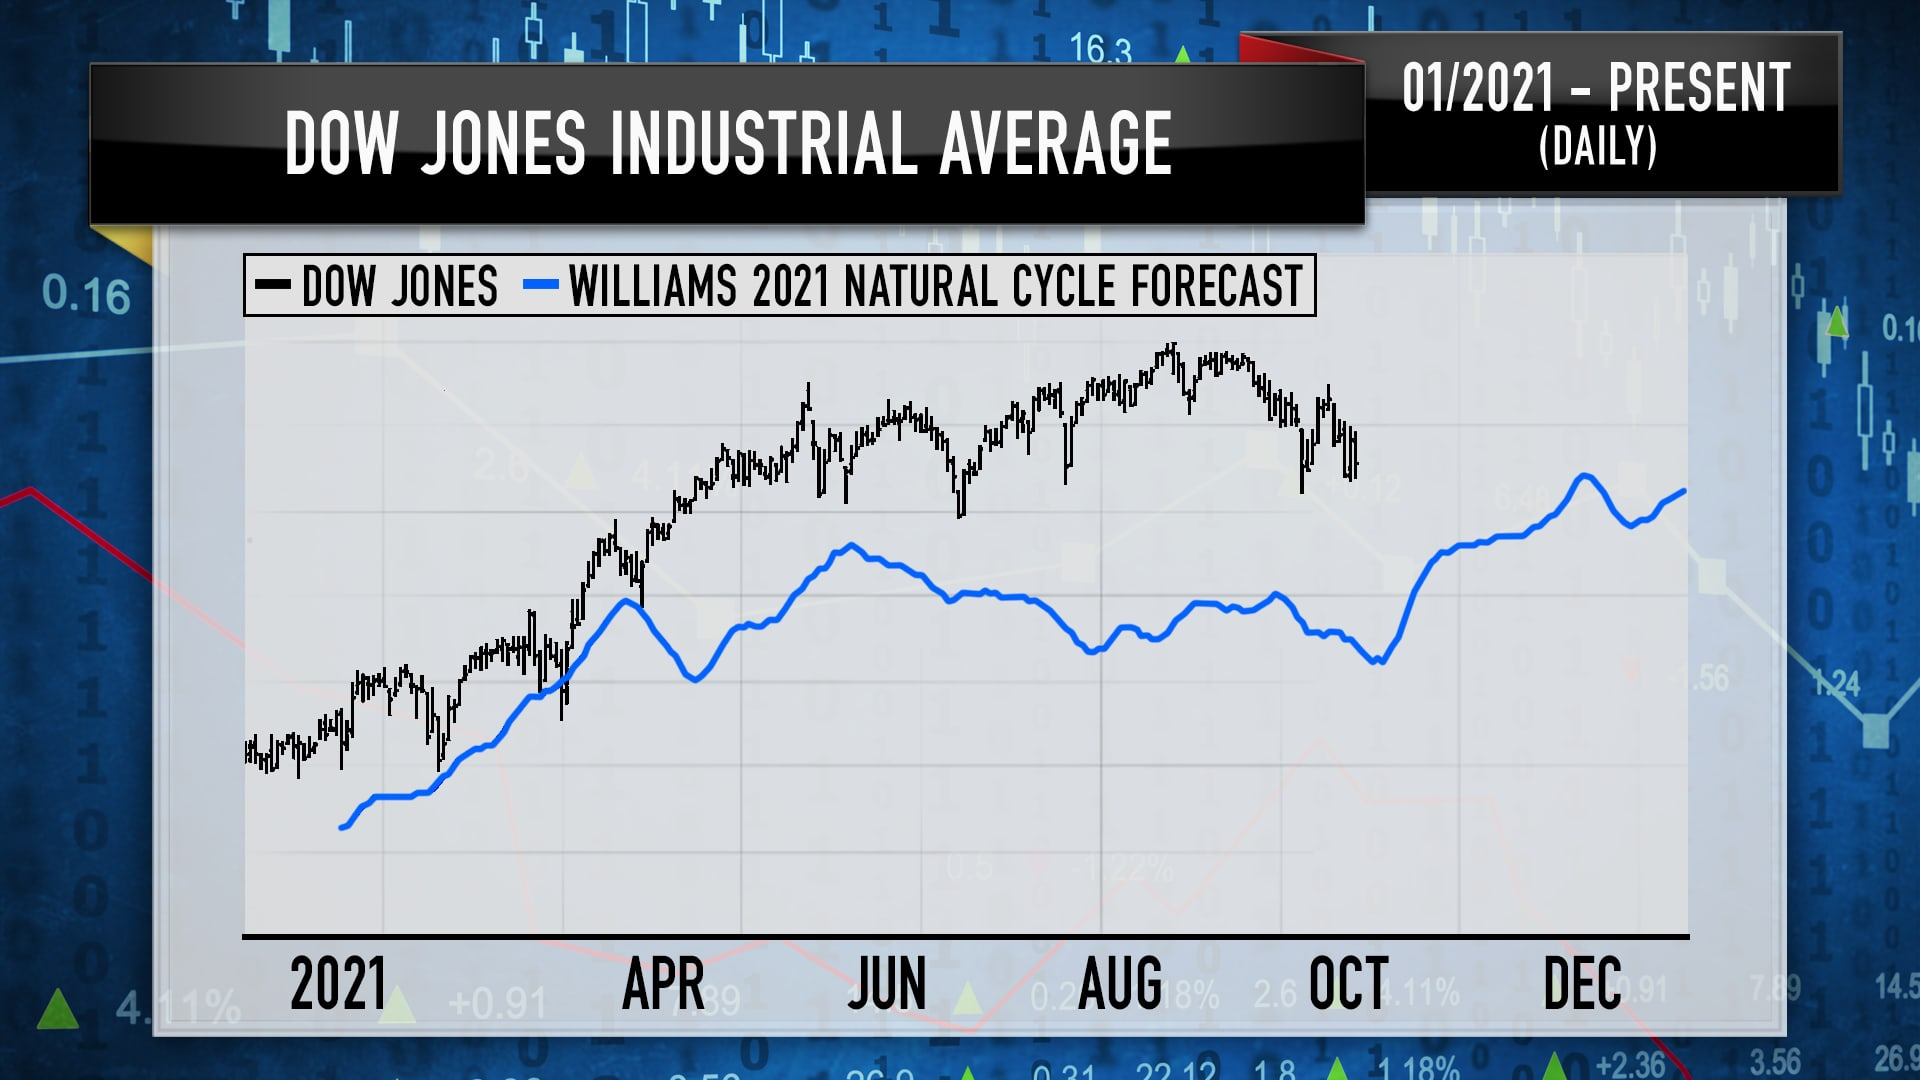 Chart from the 10/08 episode of Mad Money